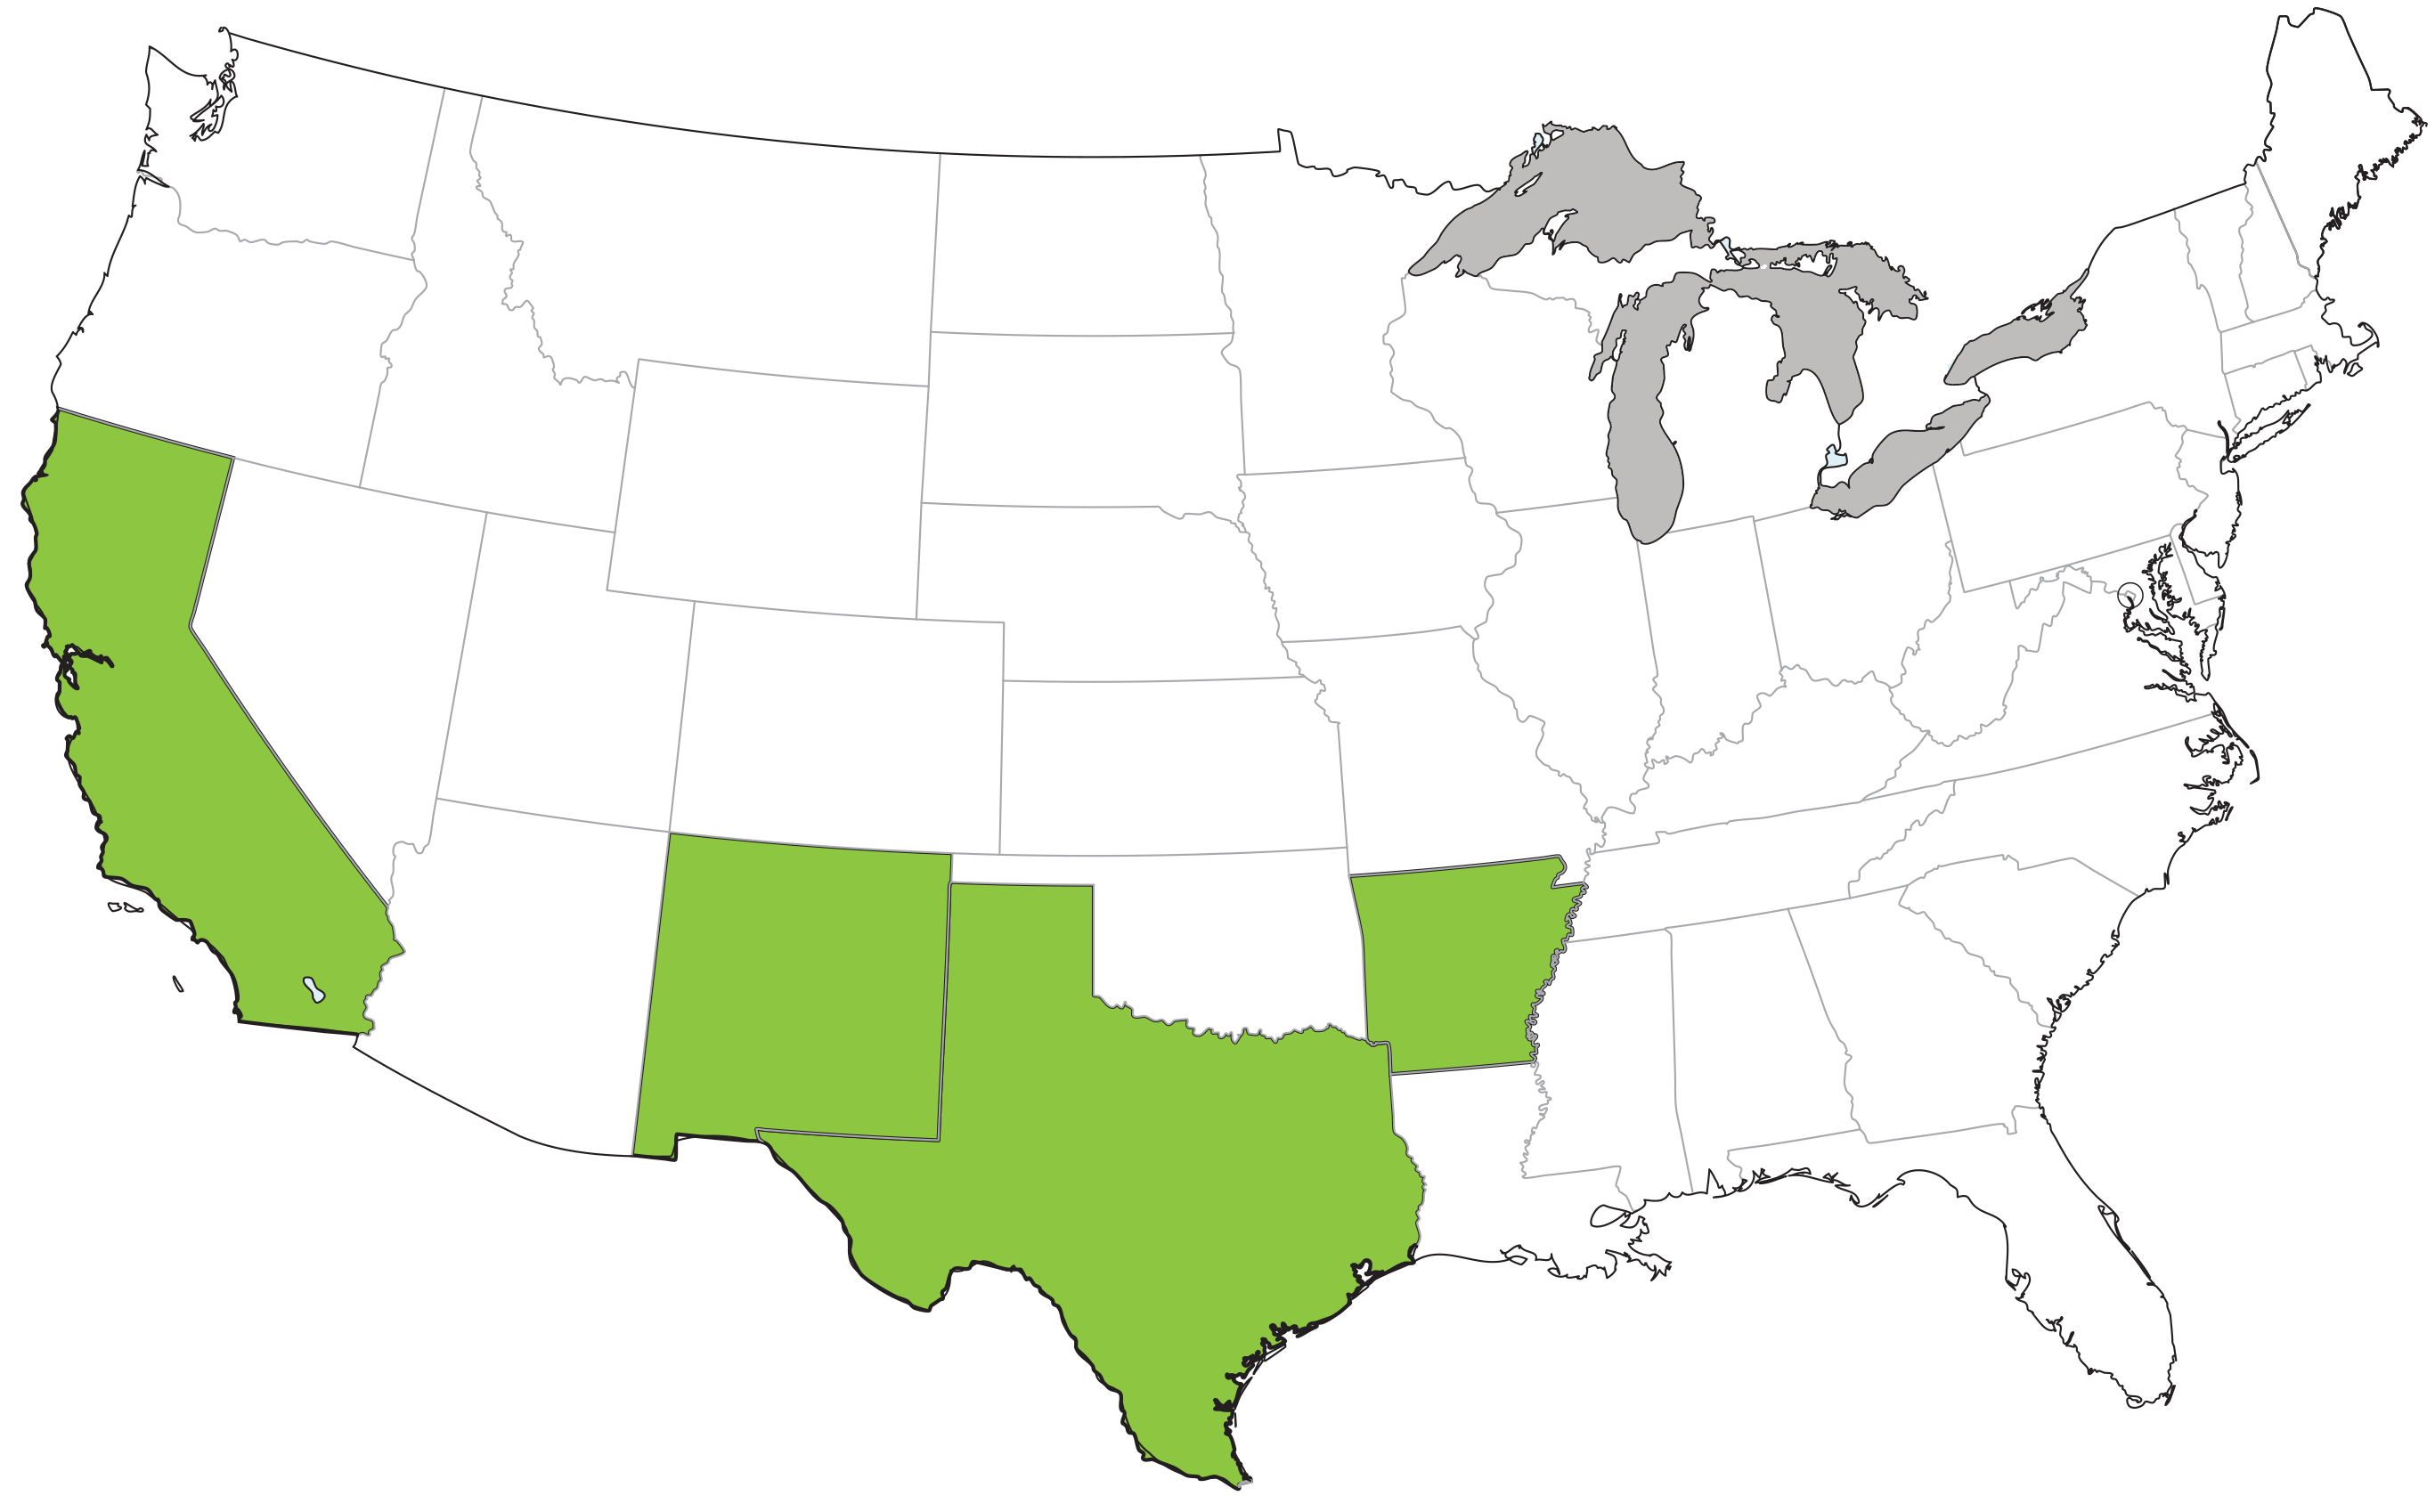 usa map for website